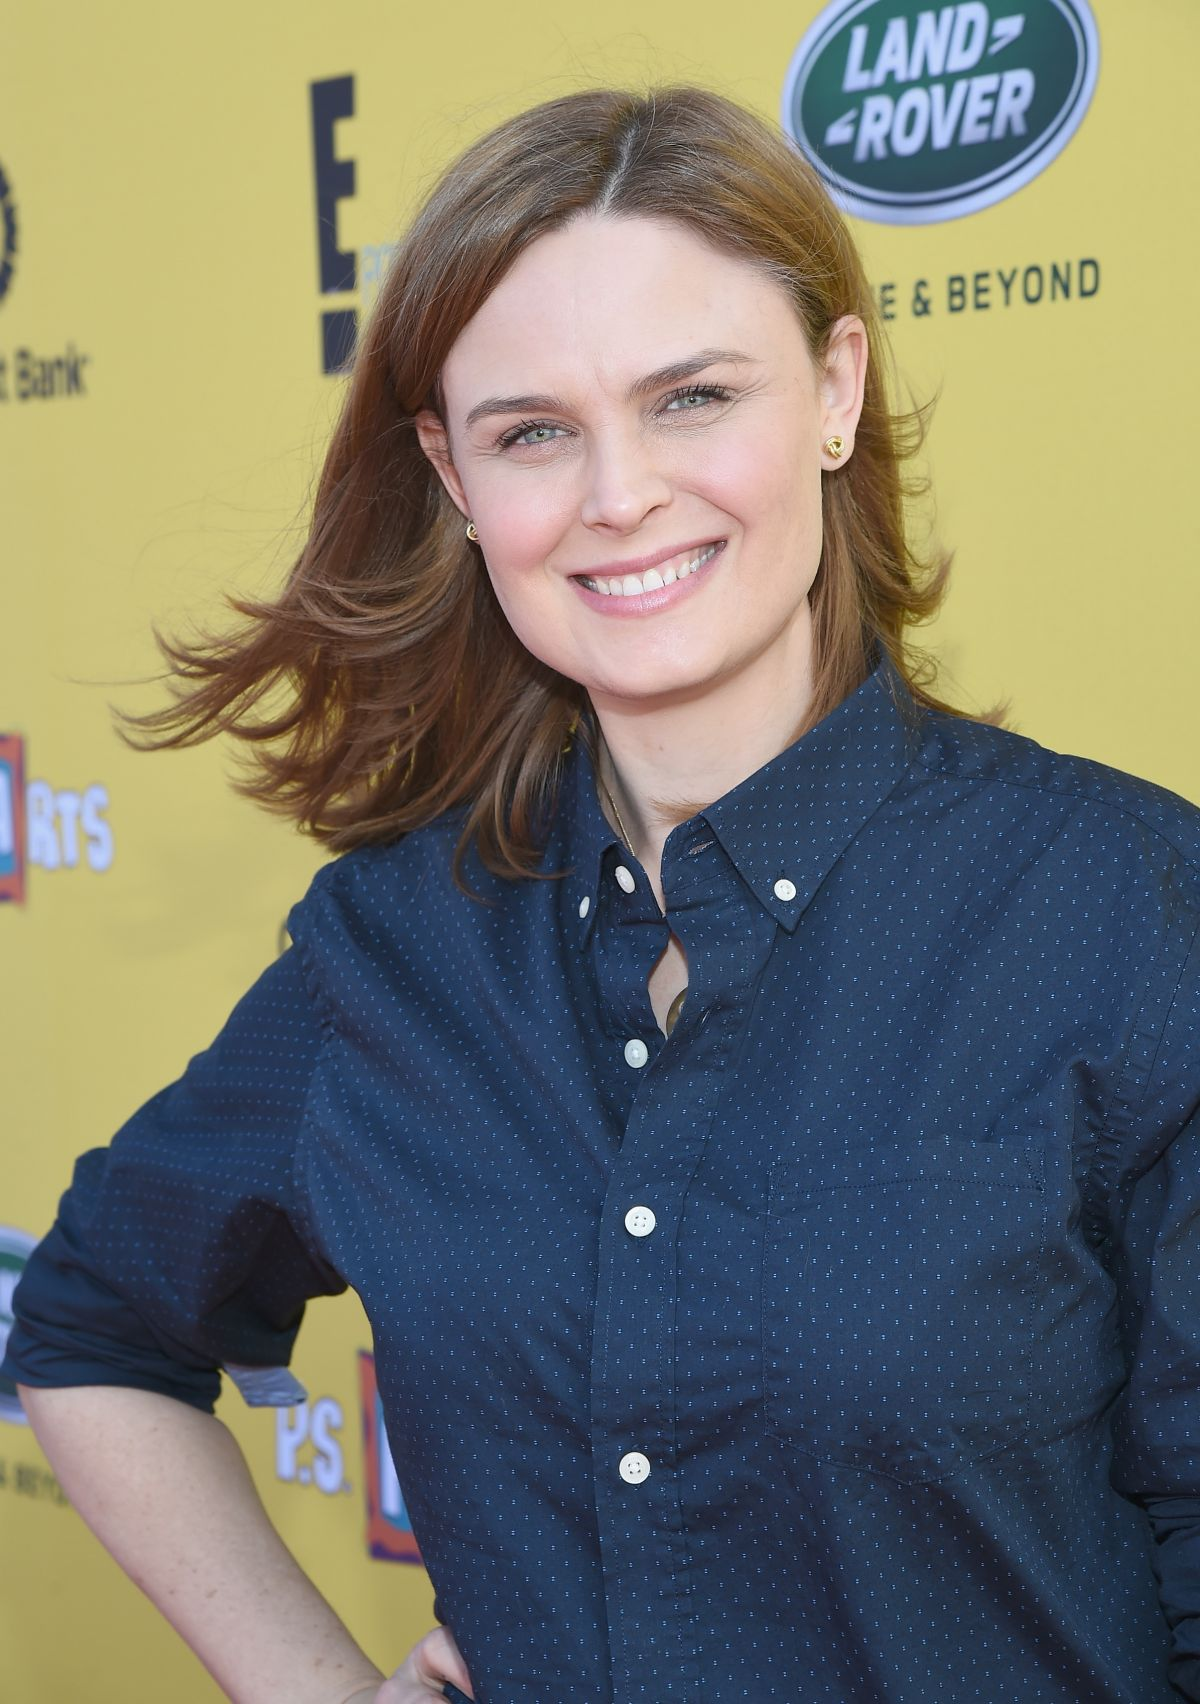 EMILY DESCHANEL at P.S. ARTS Express Yourself 2014 in Santa Monica